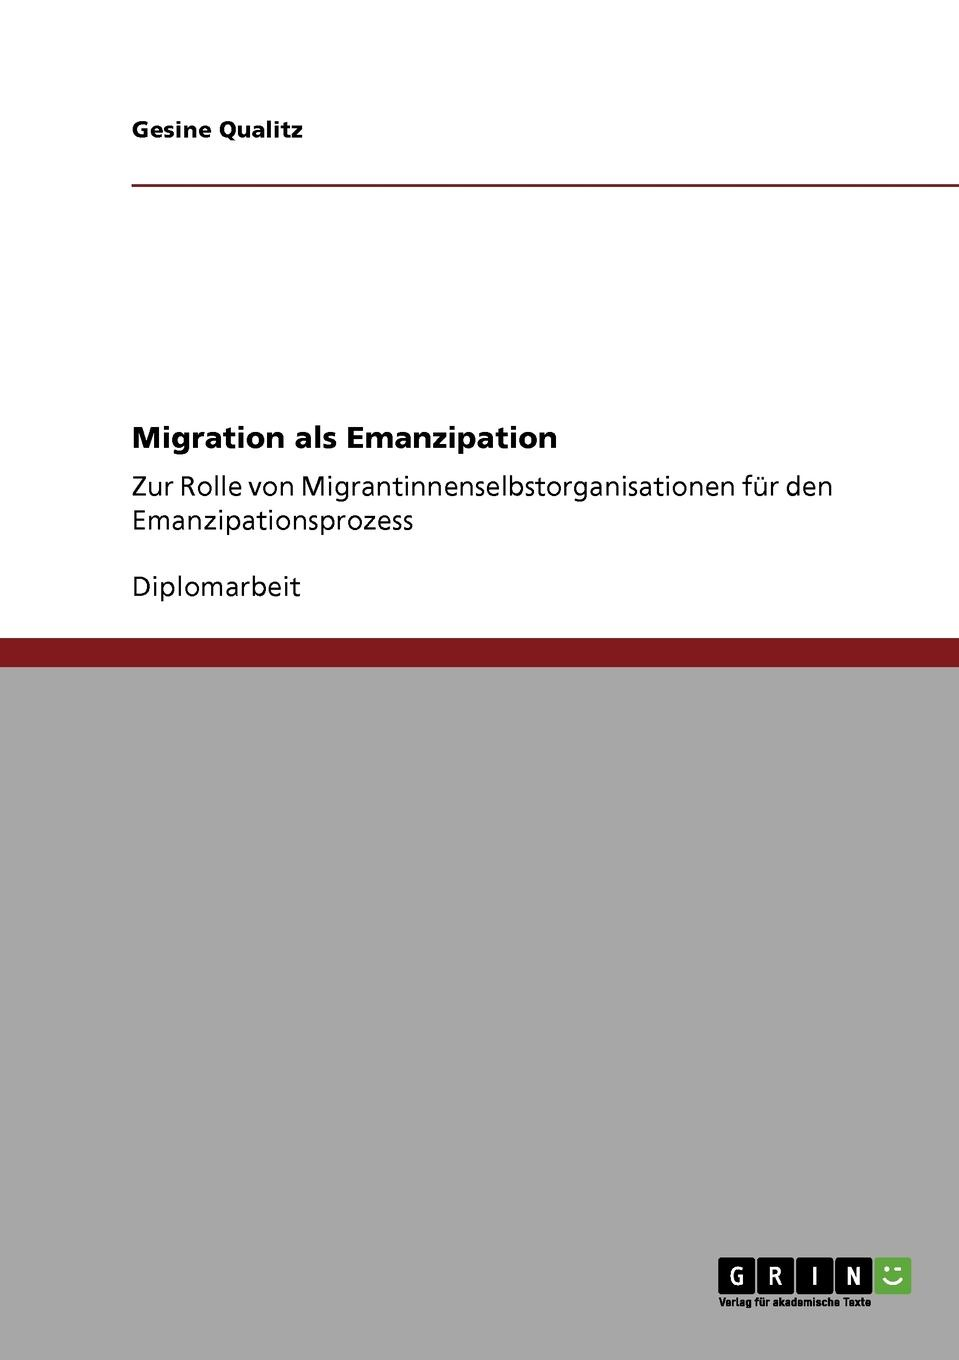 Gesine Qualitz Migration als Emanzipation ekaterina redkov lebenslagen alterer migrantinnen und migranten in deutschland